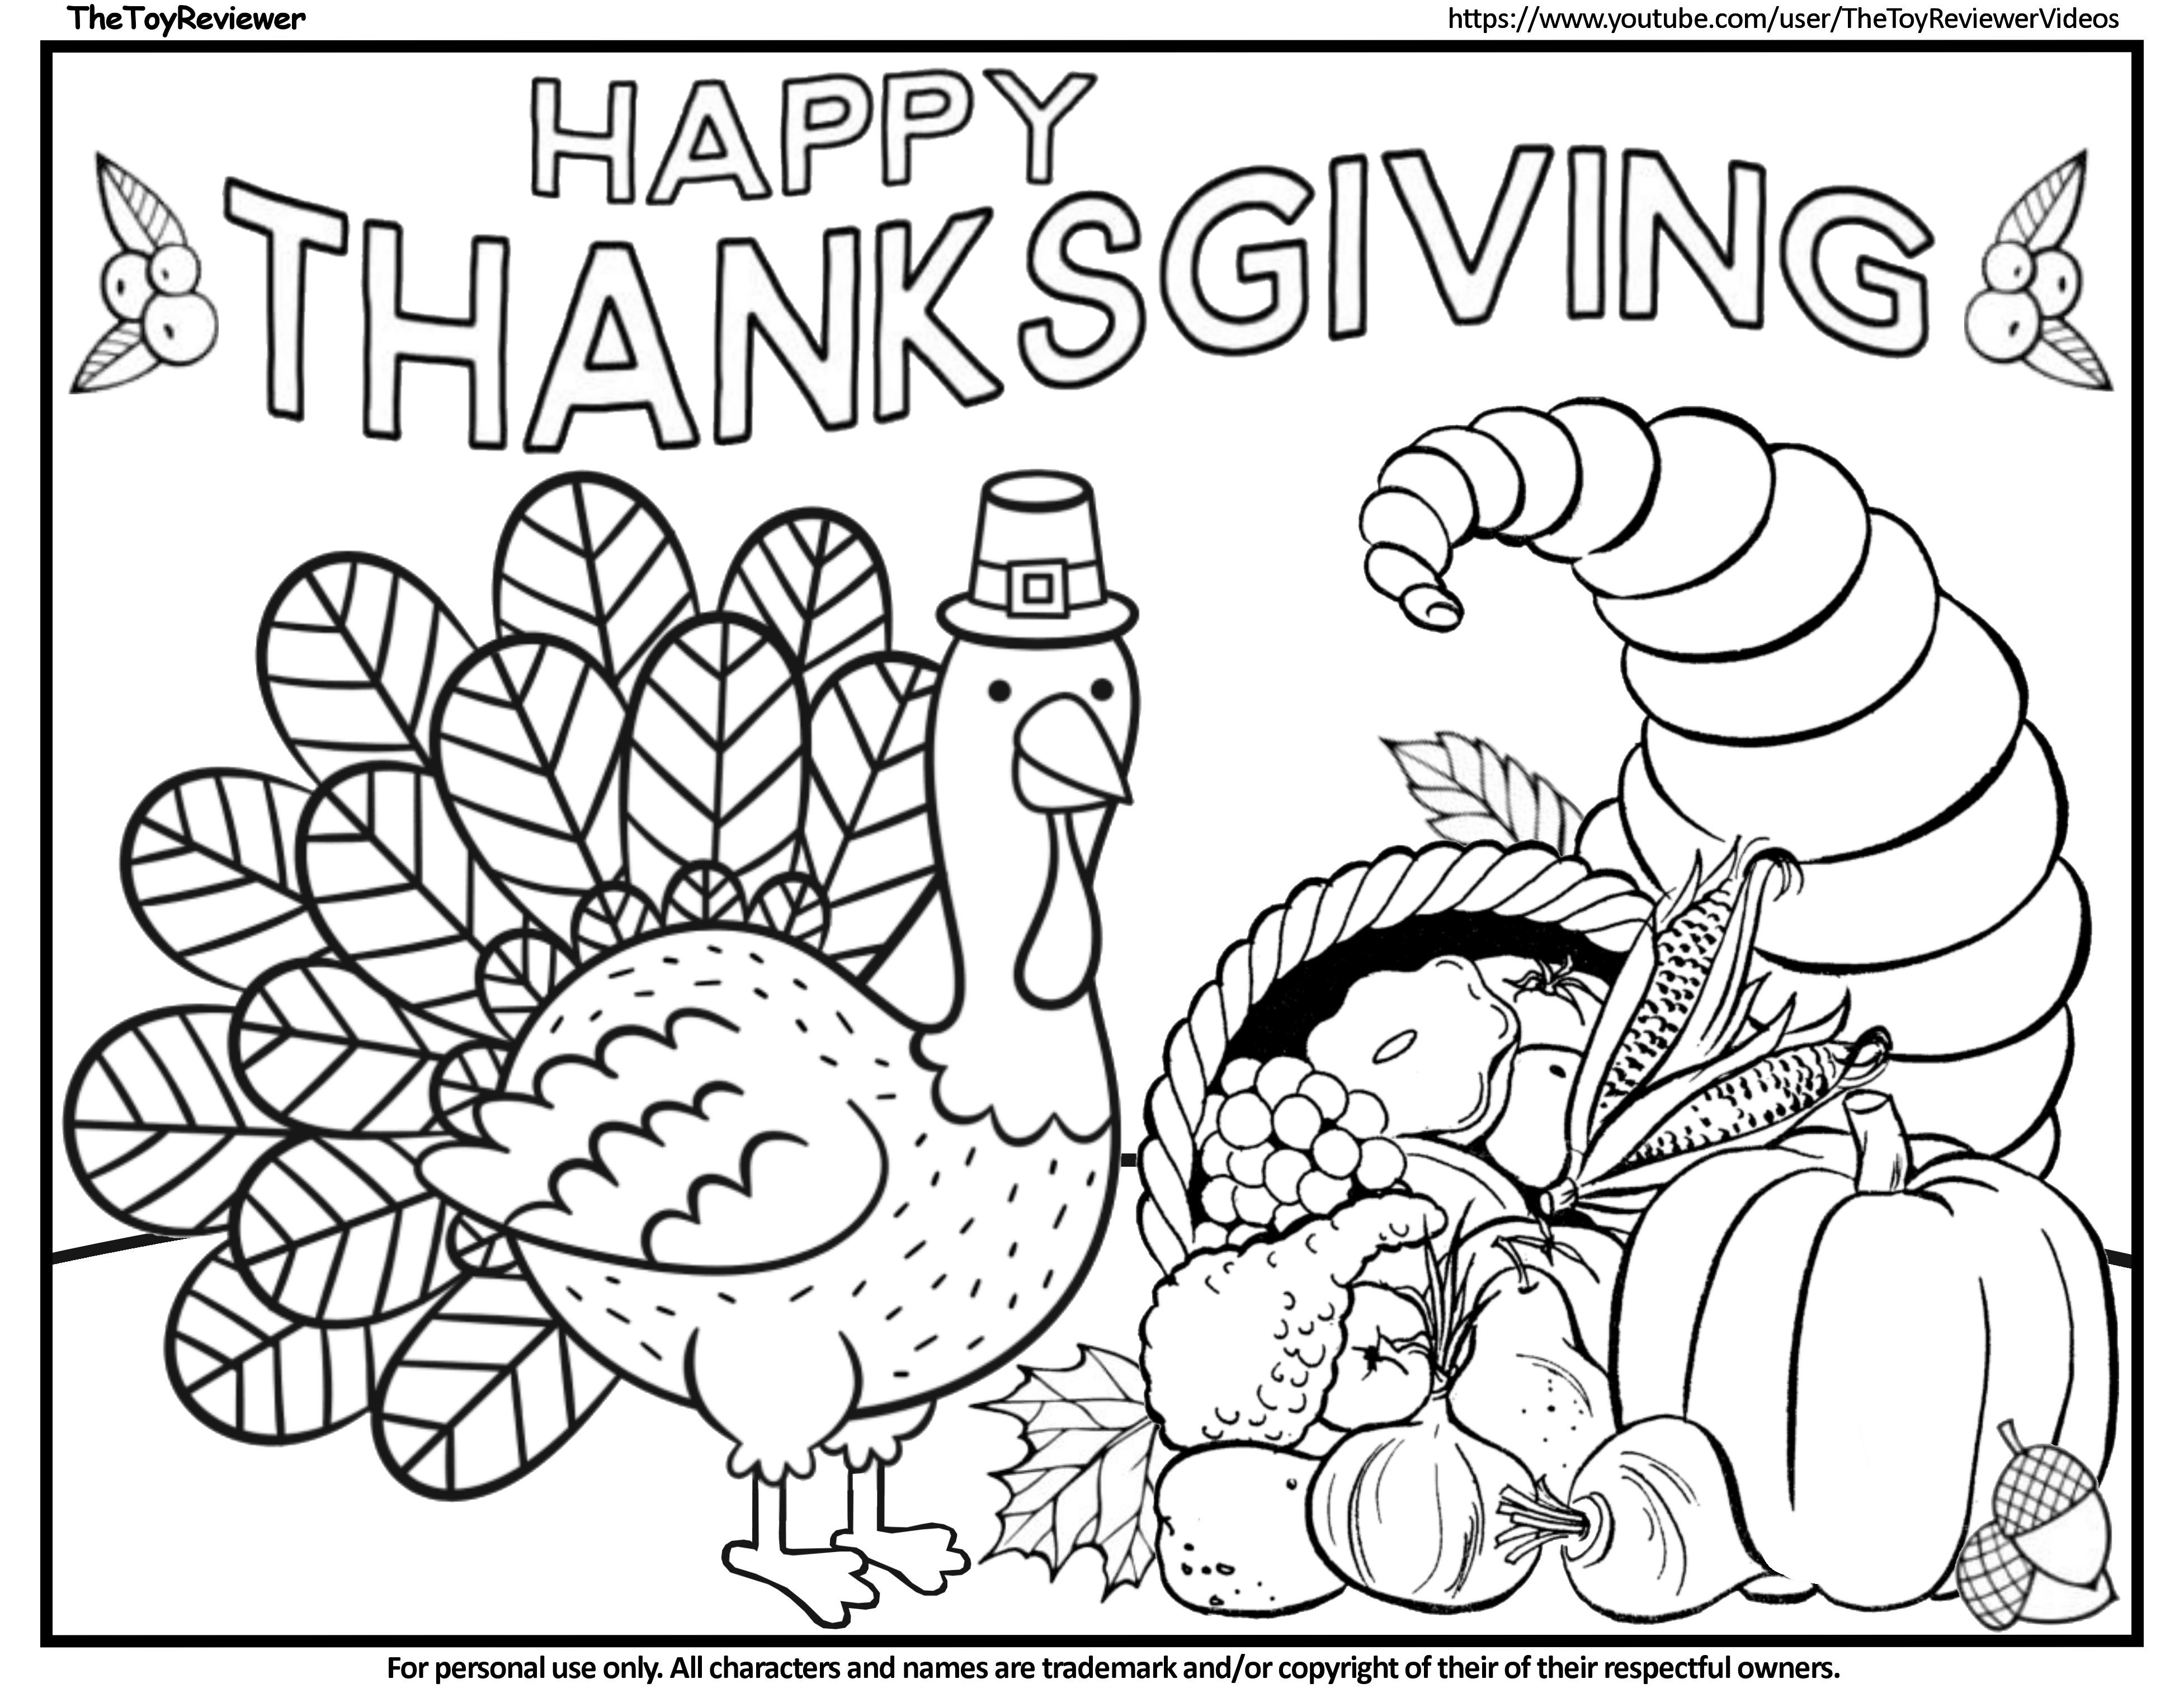 Here Is The Thanksgiving Turkey Coloring Page Click The